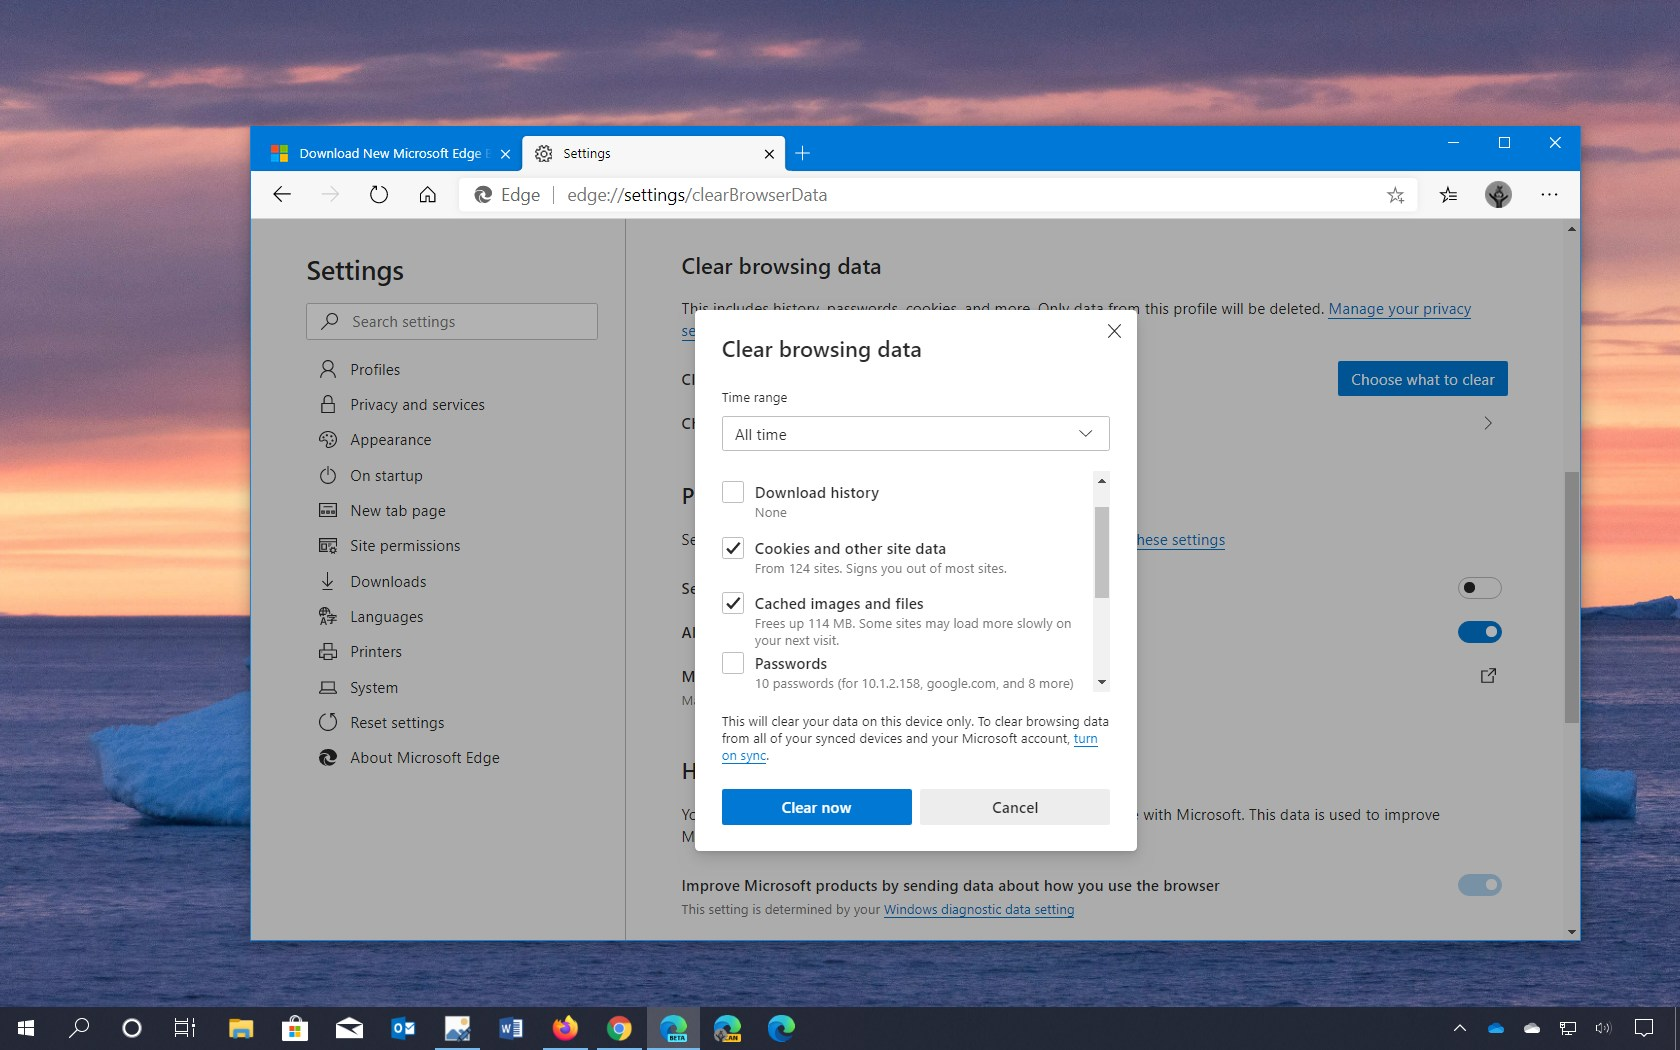 Microsoft Edge clear cache and cookies